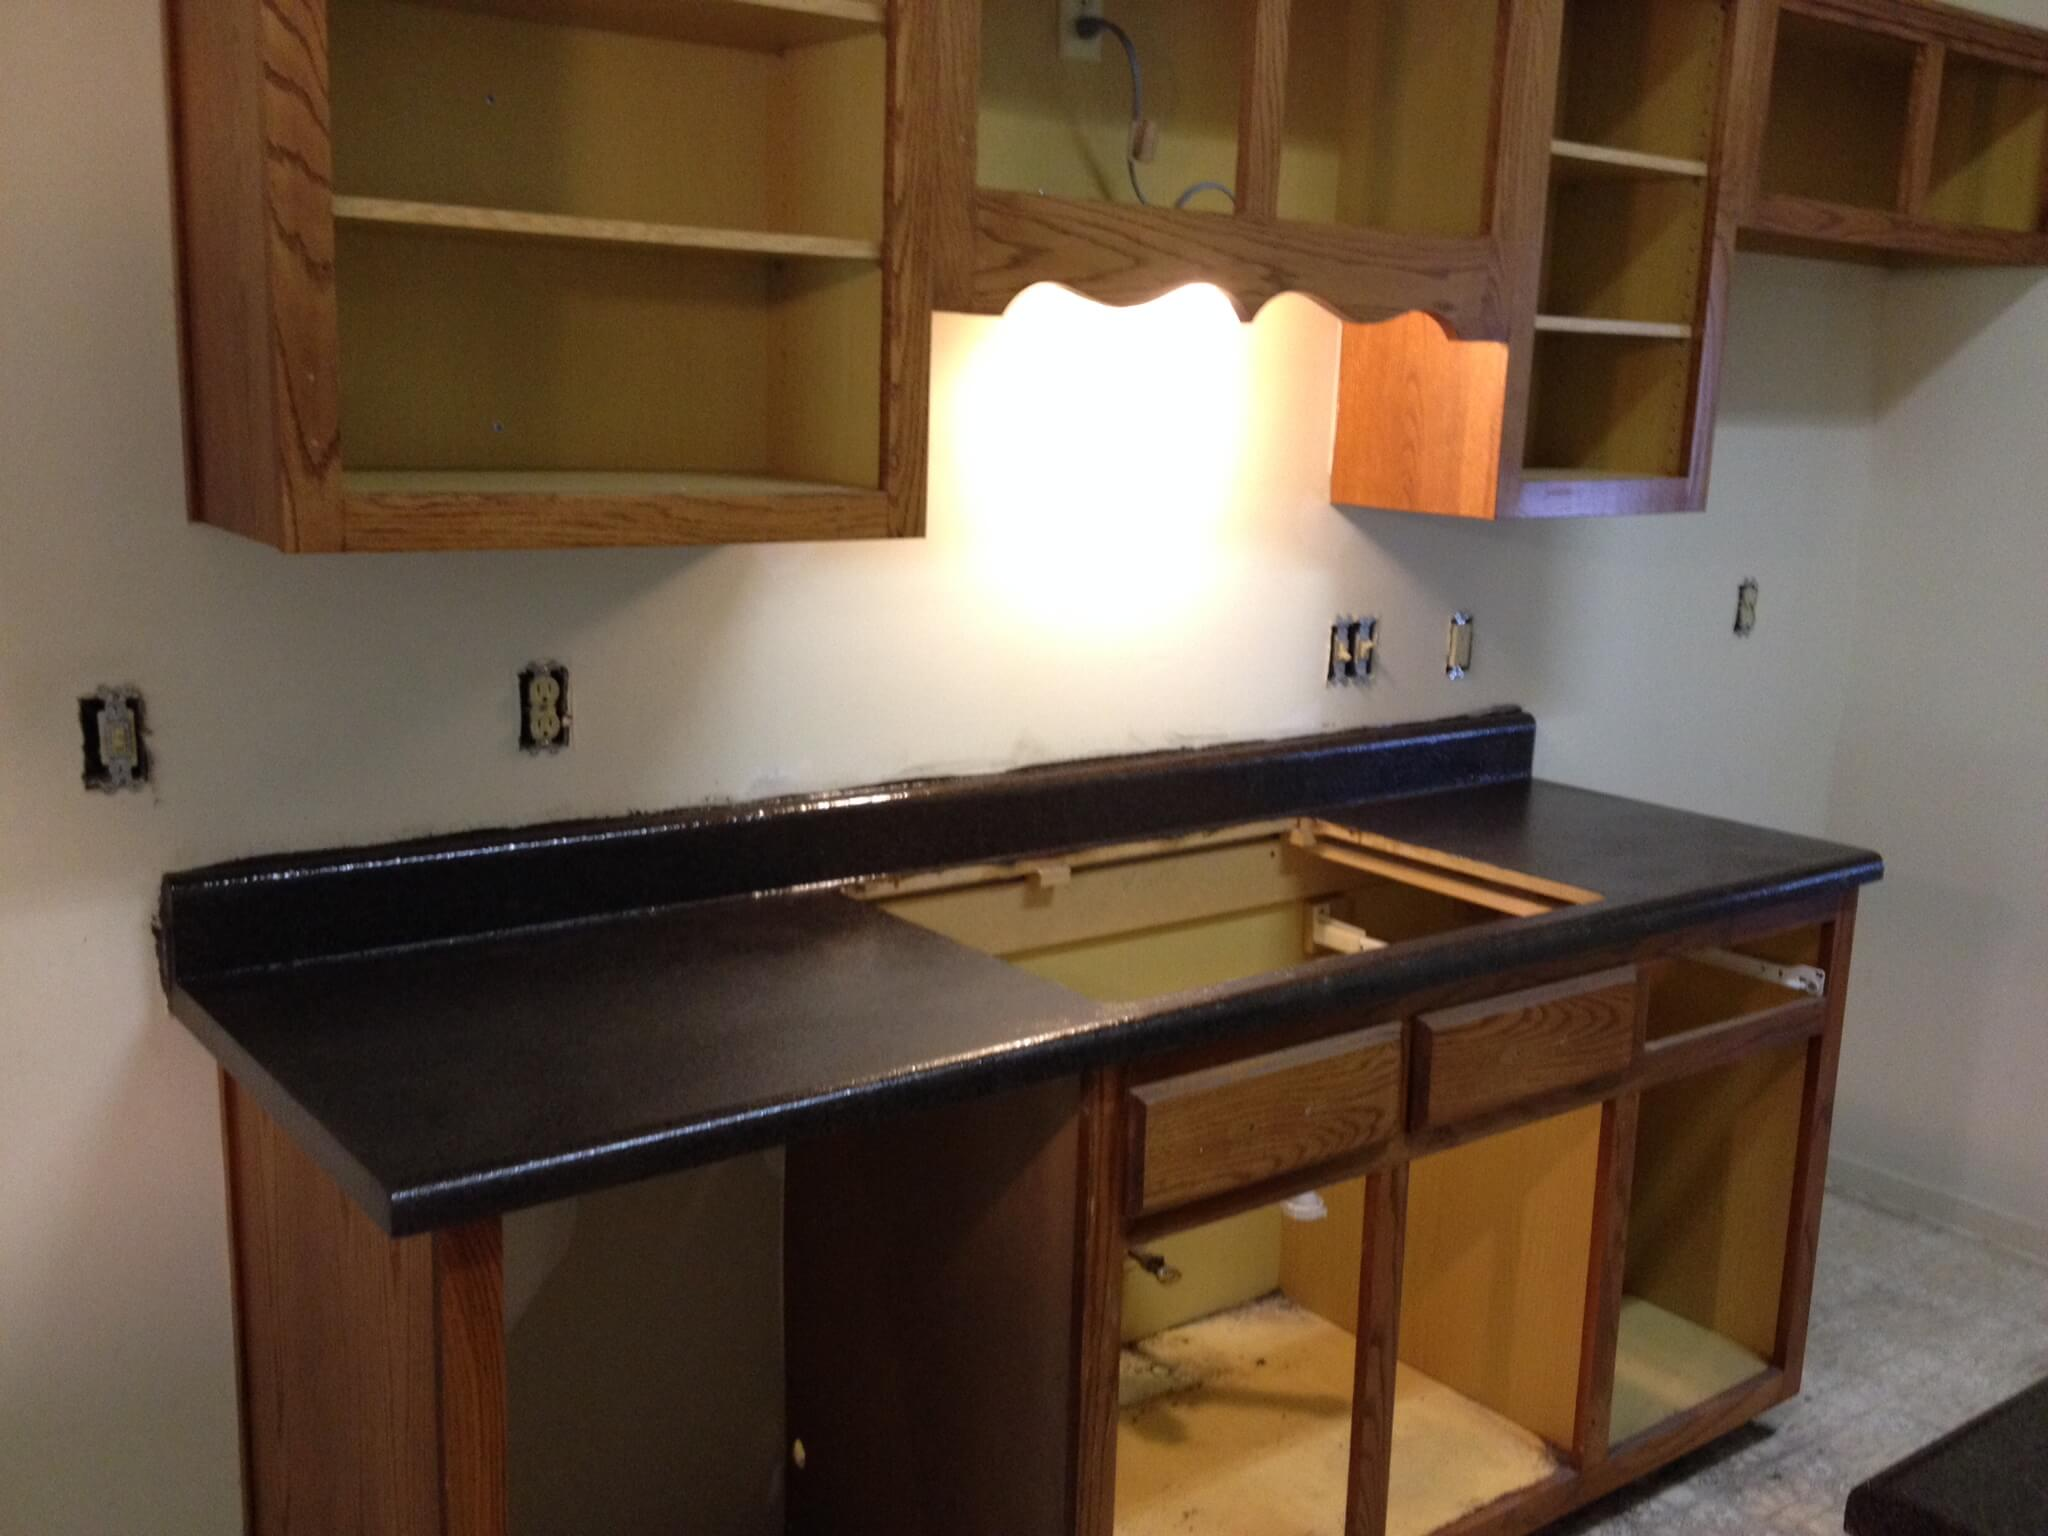 How to remodel a 20 year old kitchen for less than 3 000 for Kitchen cabinets 4 less